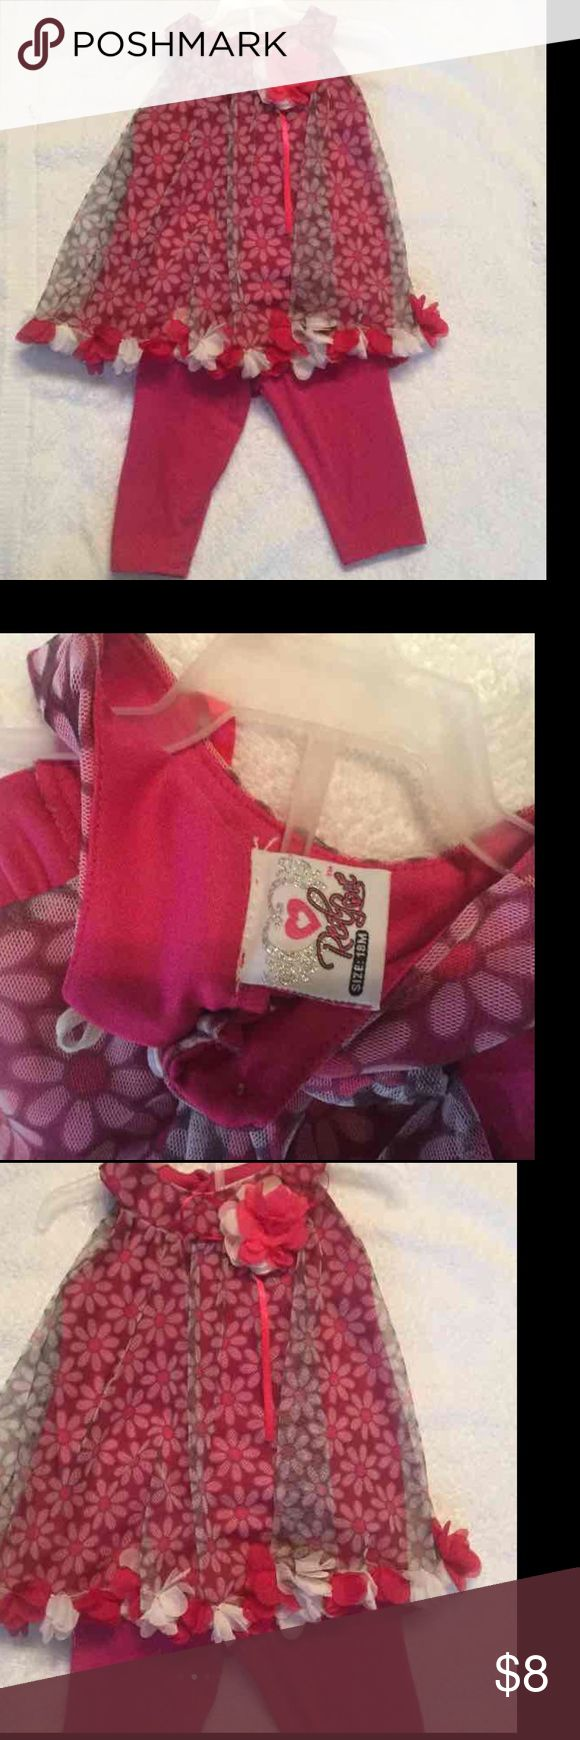 🎀Cute Toddler Girl Fuchsia Outfit🎀 Cute ❤️️Gentle Used like New Condition Cute Toddler Girl Fuchsia Outfit with flowers only worn once 18 months Matching Sets